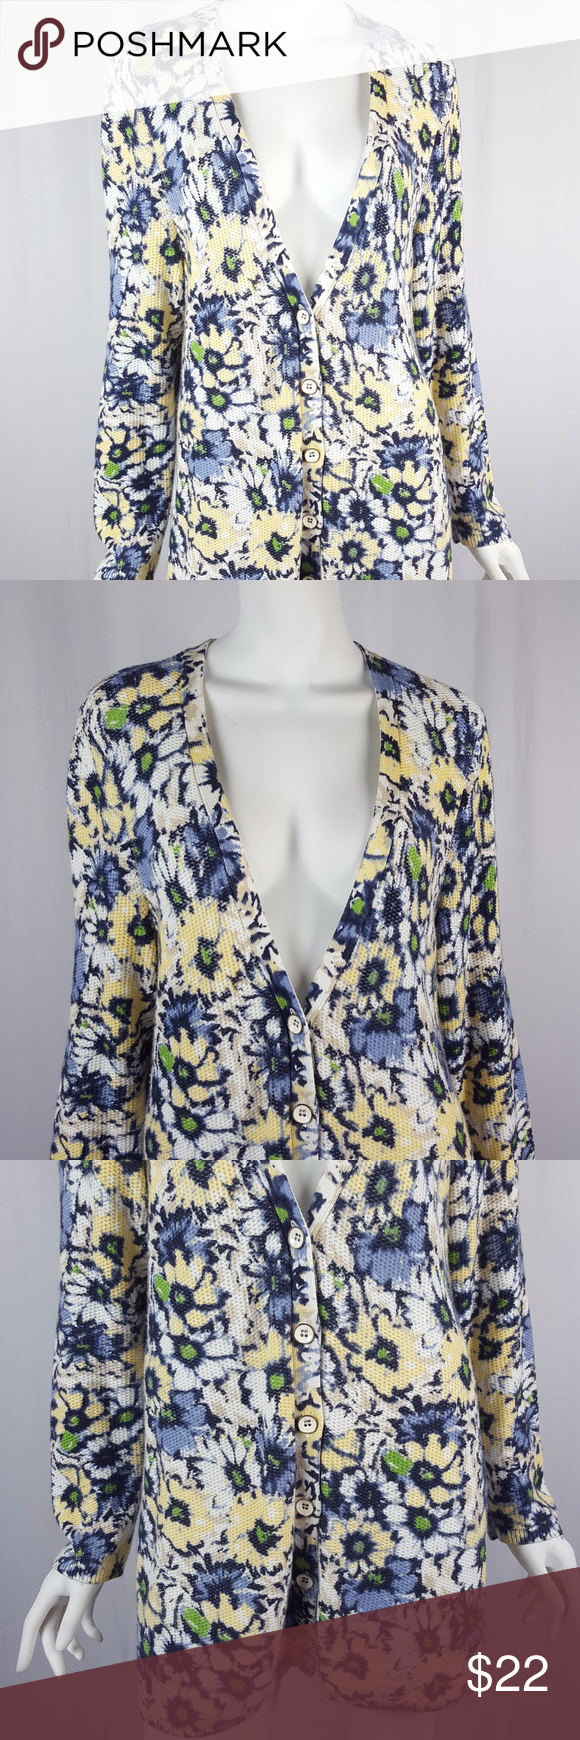 "J. Jill Yellow Blue Daisy Cardigan Sweater J. Jill Womens Size Large Yellow & Blue Daisy Print Long Sleeve Cardigan Sweater  Gently used with no flaws, see photos  Material: cotton, viscose, nylon  Measurements: 21"" armpit to armpit 20"" waist while laying flat 32"" in length  YA72 J. Jill Sweaters Cardigans"